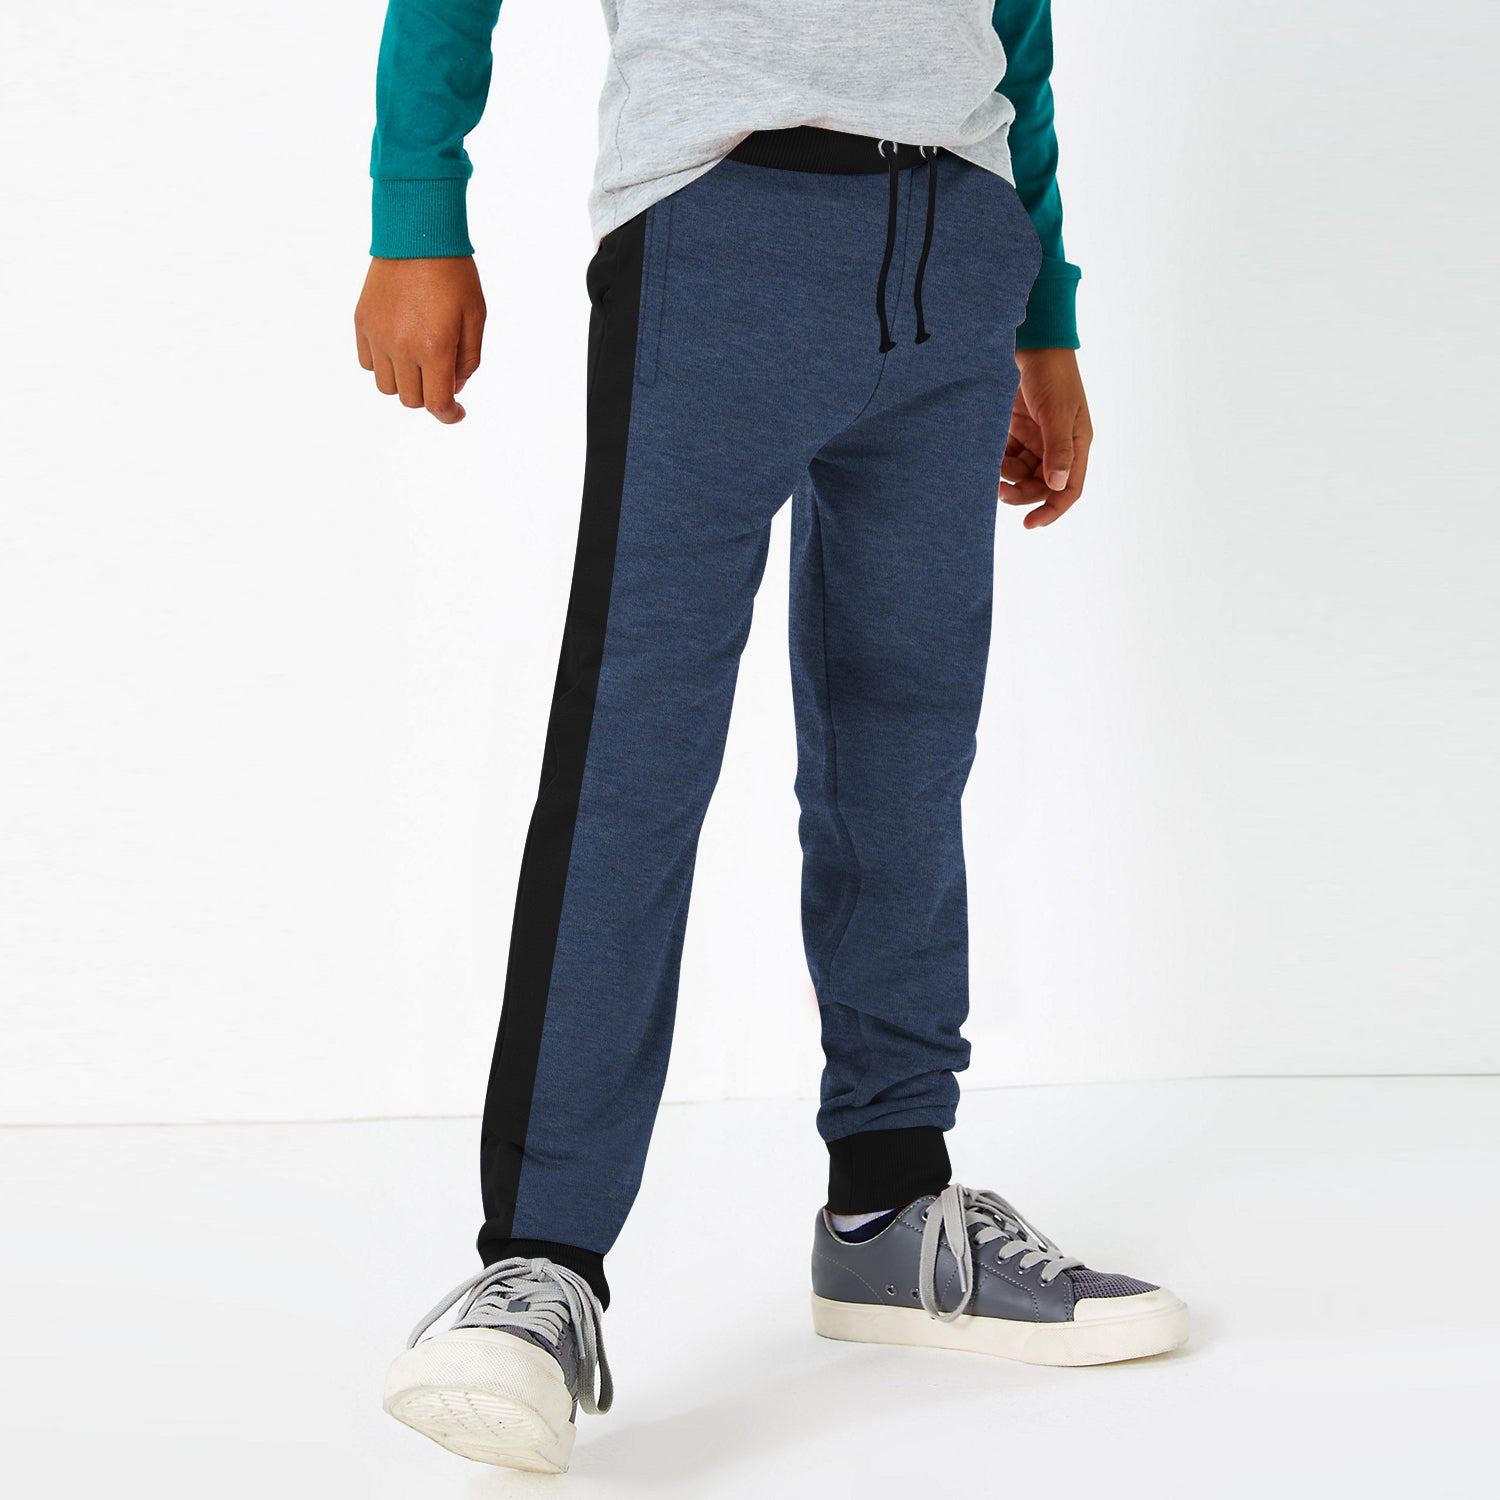 Uneek Single Jersey Jogger Trouser For Boys-Navy Melange & Black-BE10178